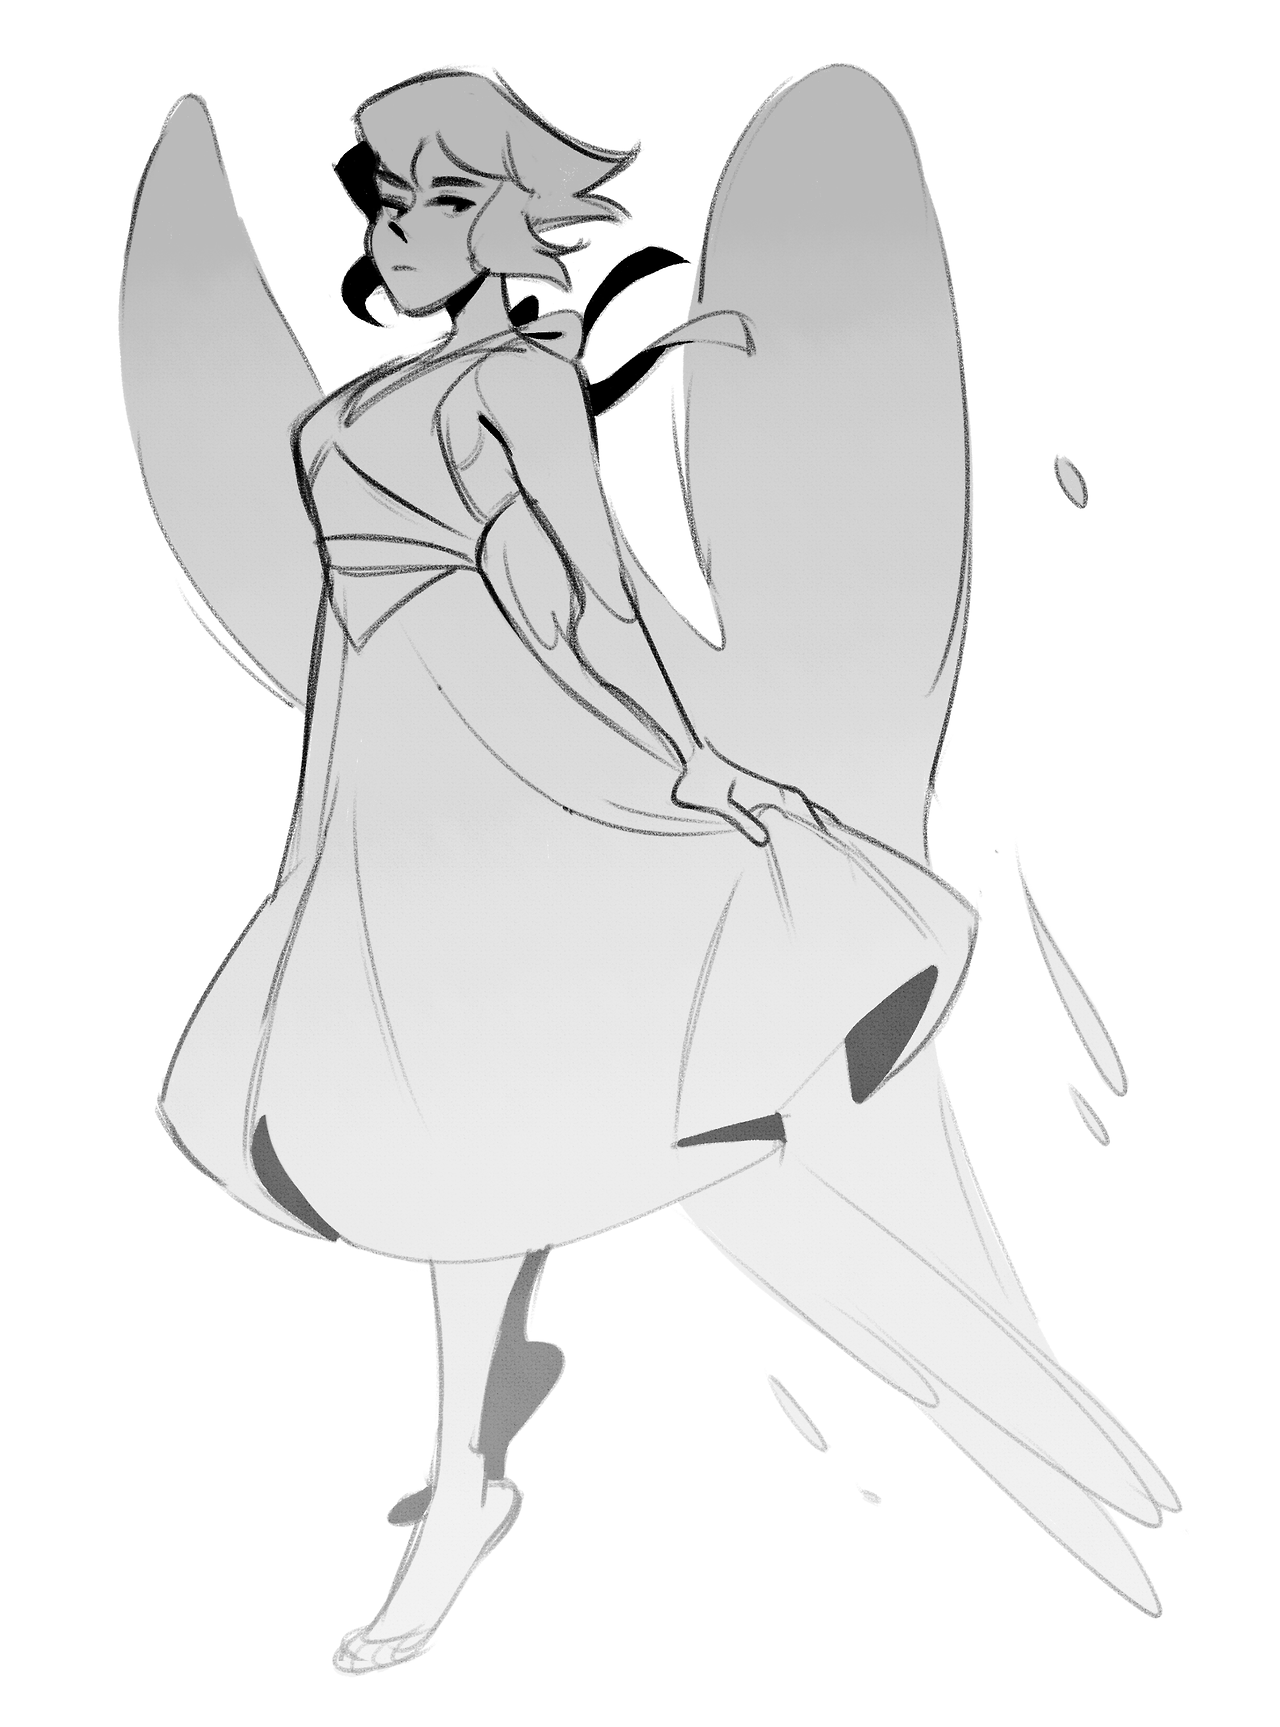 i was gonna use these lapis sketches for something, but scrapped it for another idea